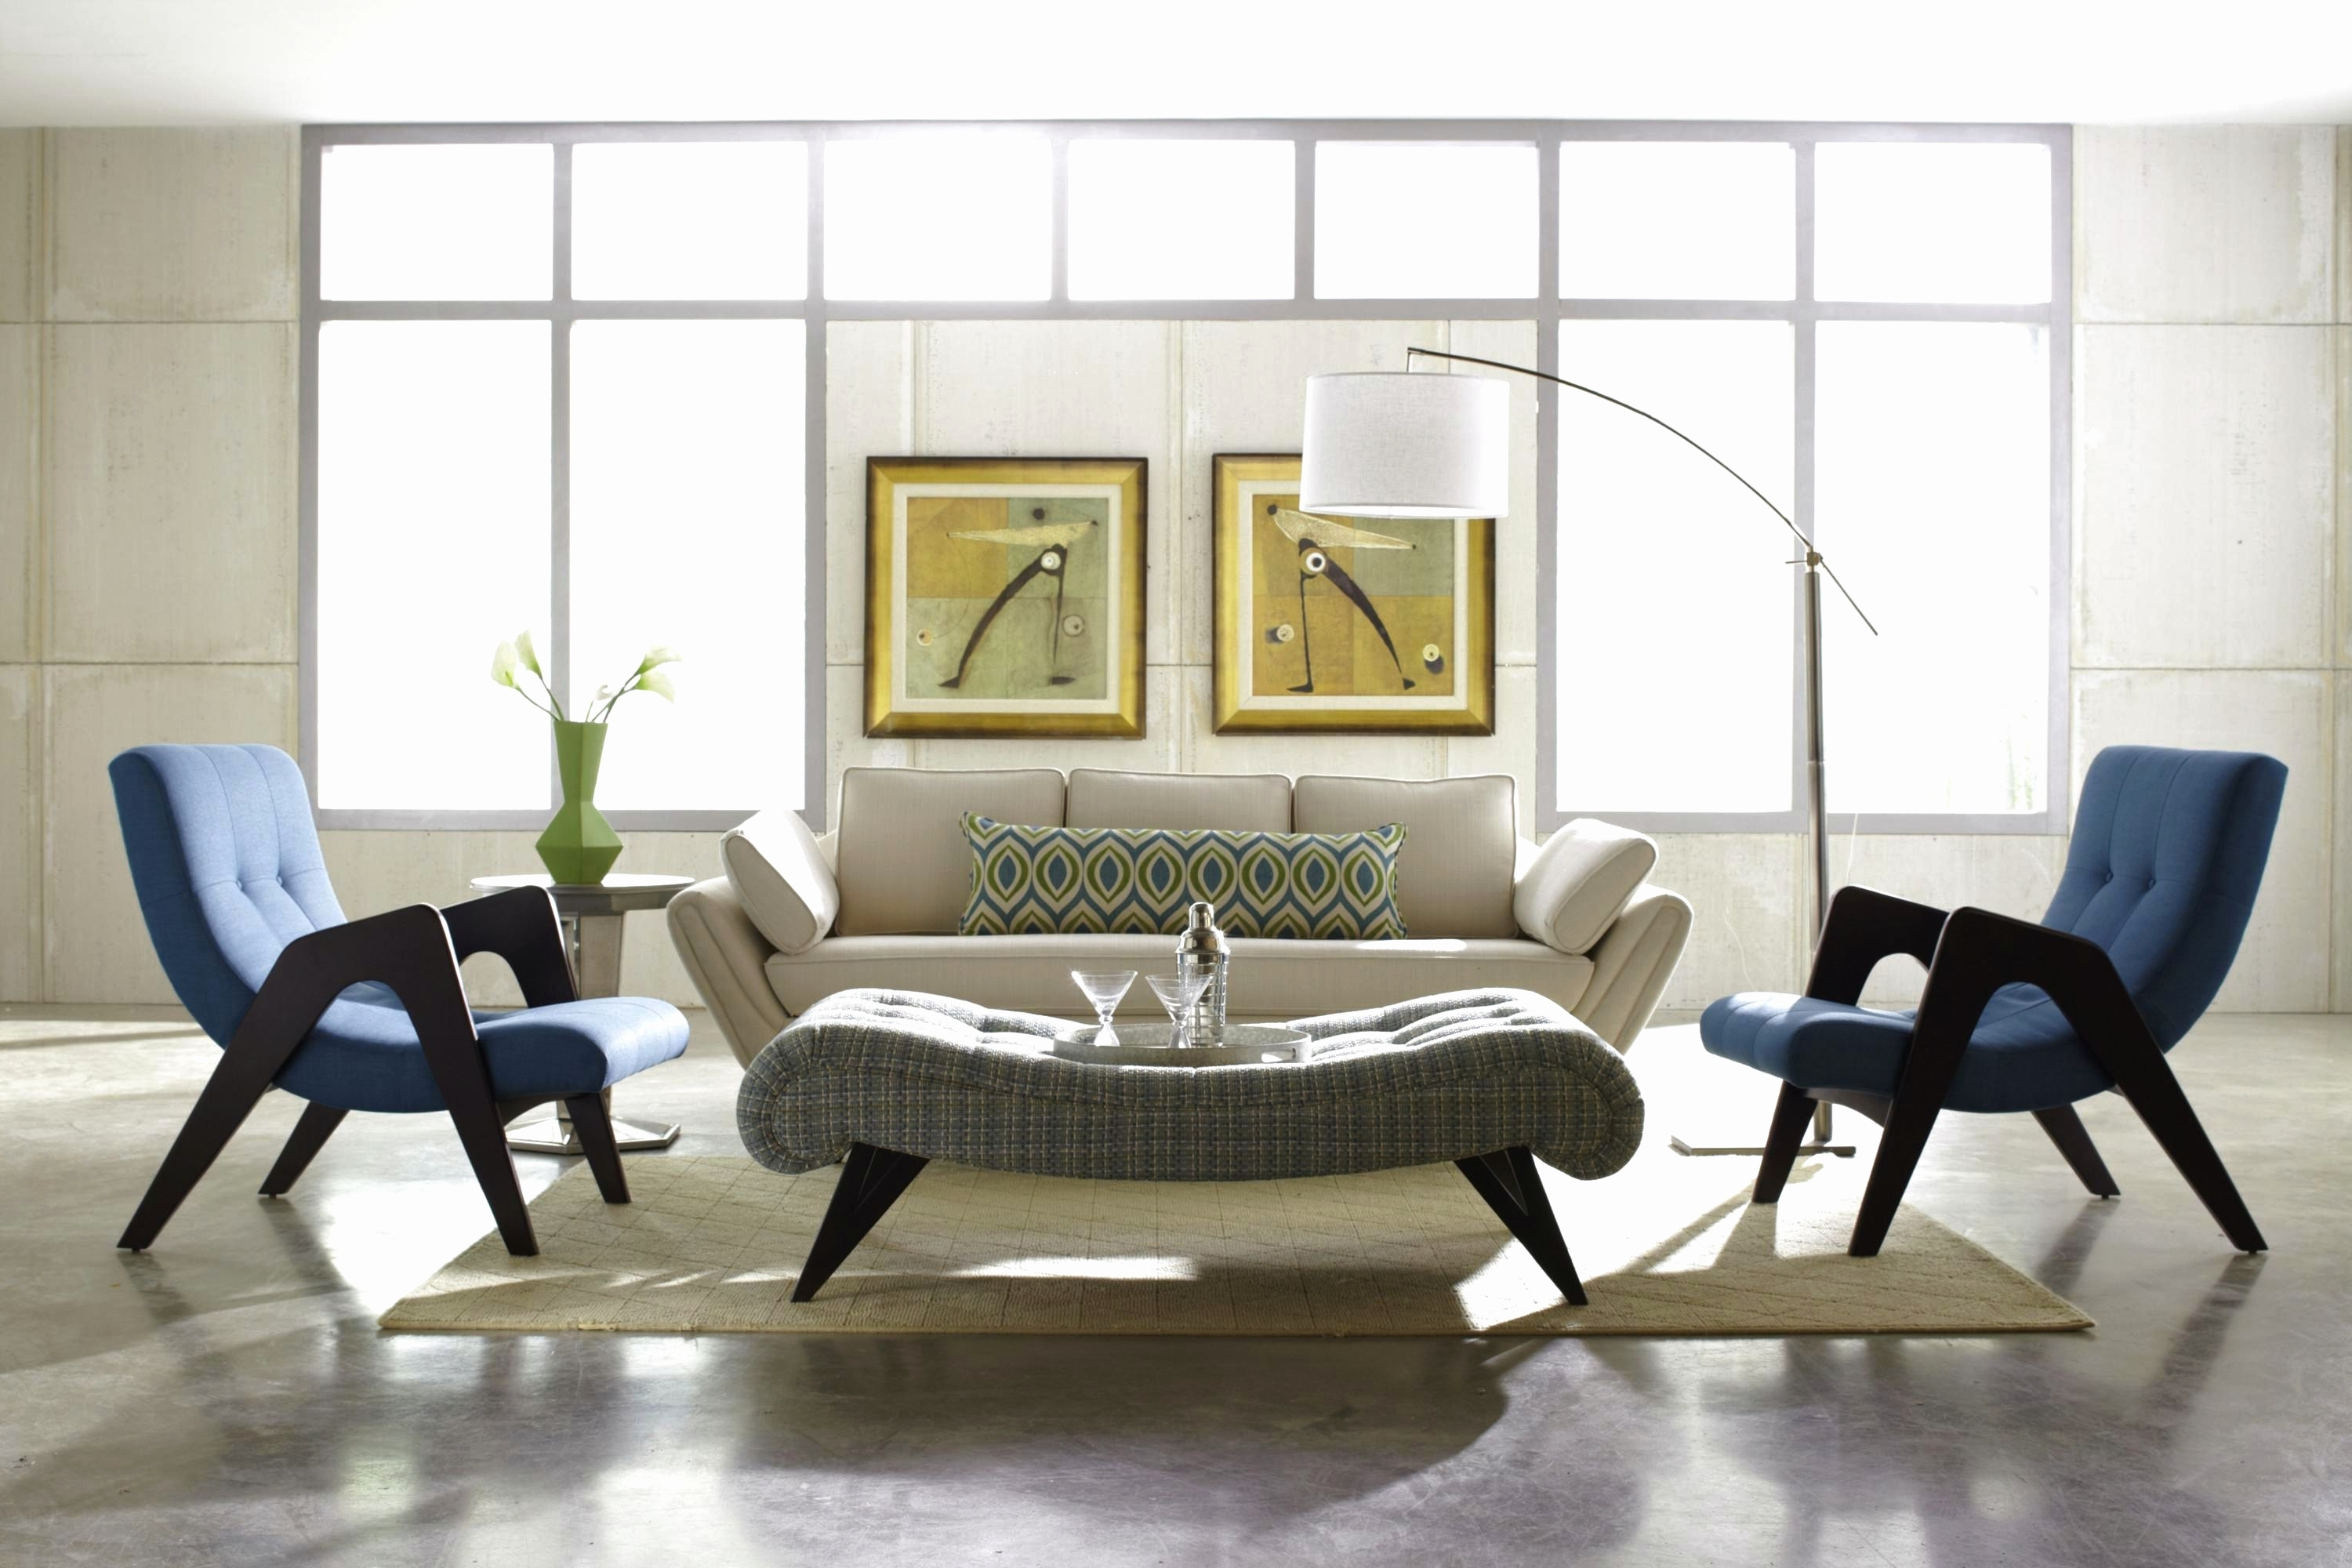 Fashionable Chaise Lounge Chairs For Small Spaces With Living Room : Chaise Lounge With Ottoman Cream Tufted Chaise (View 10 of 15)